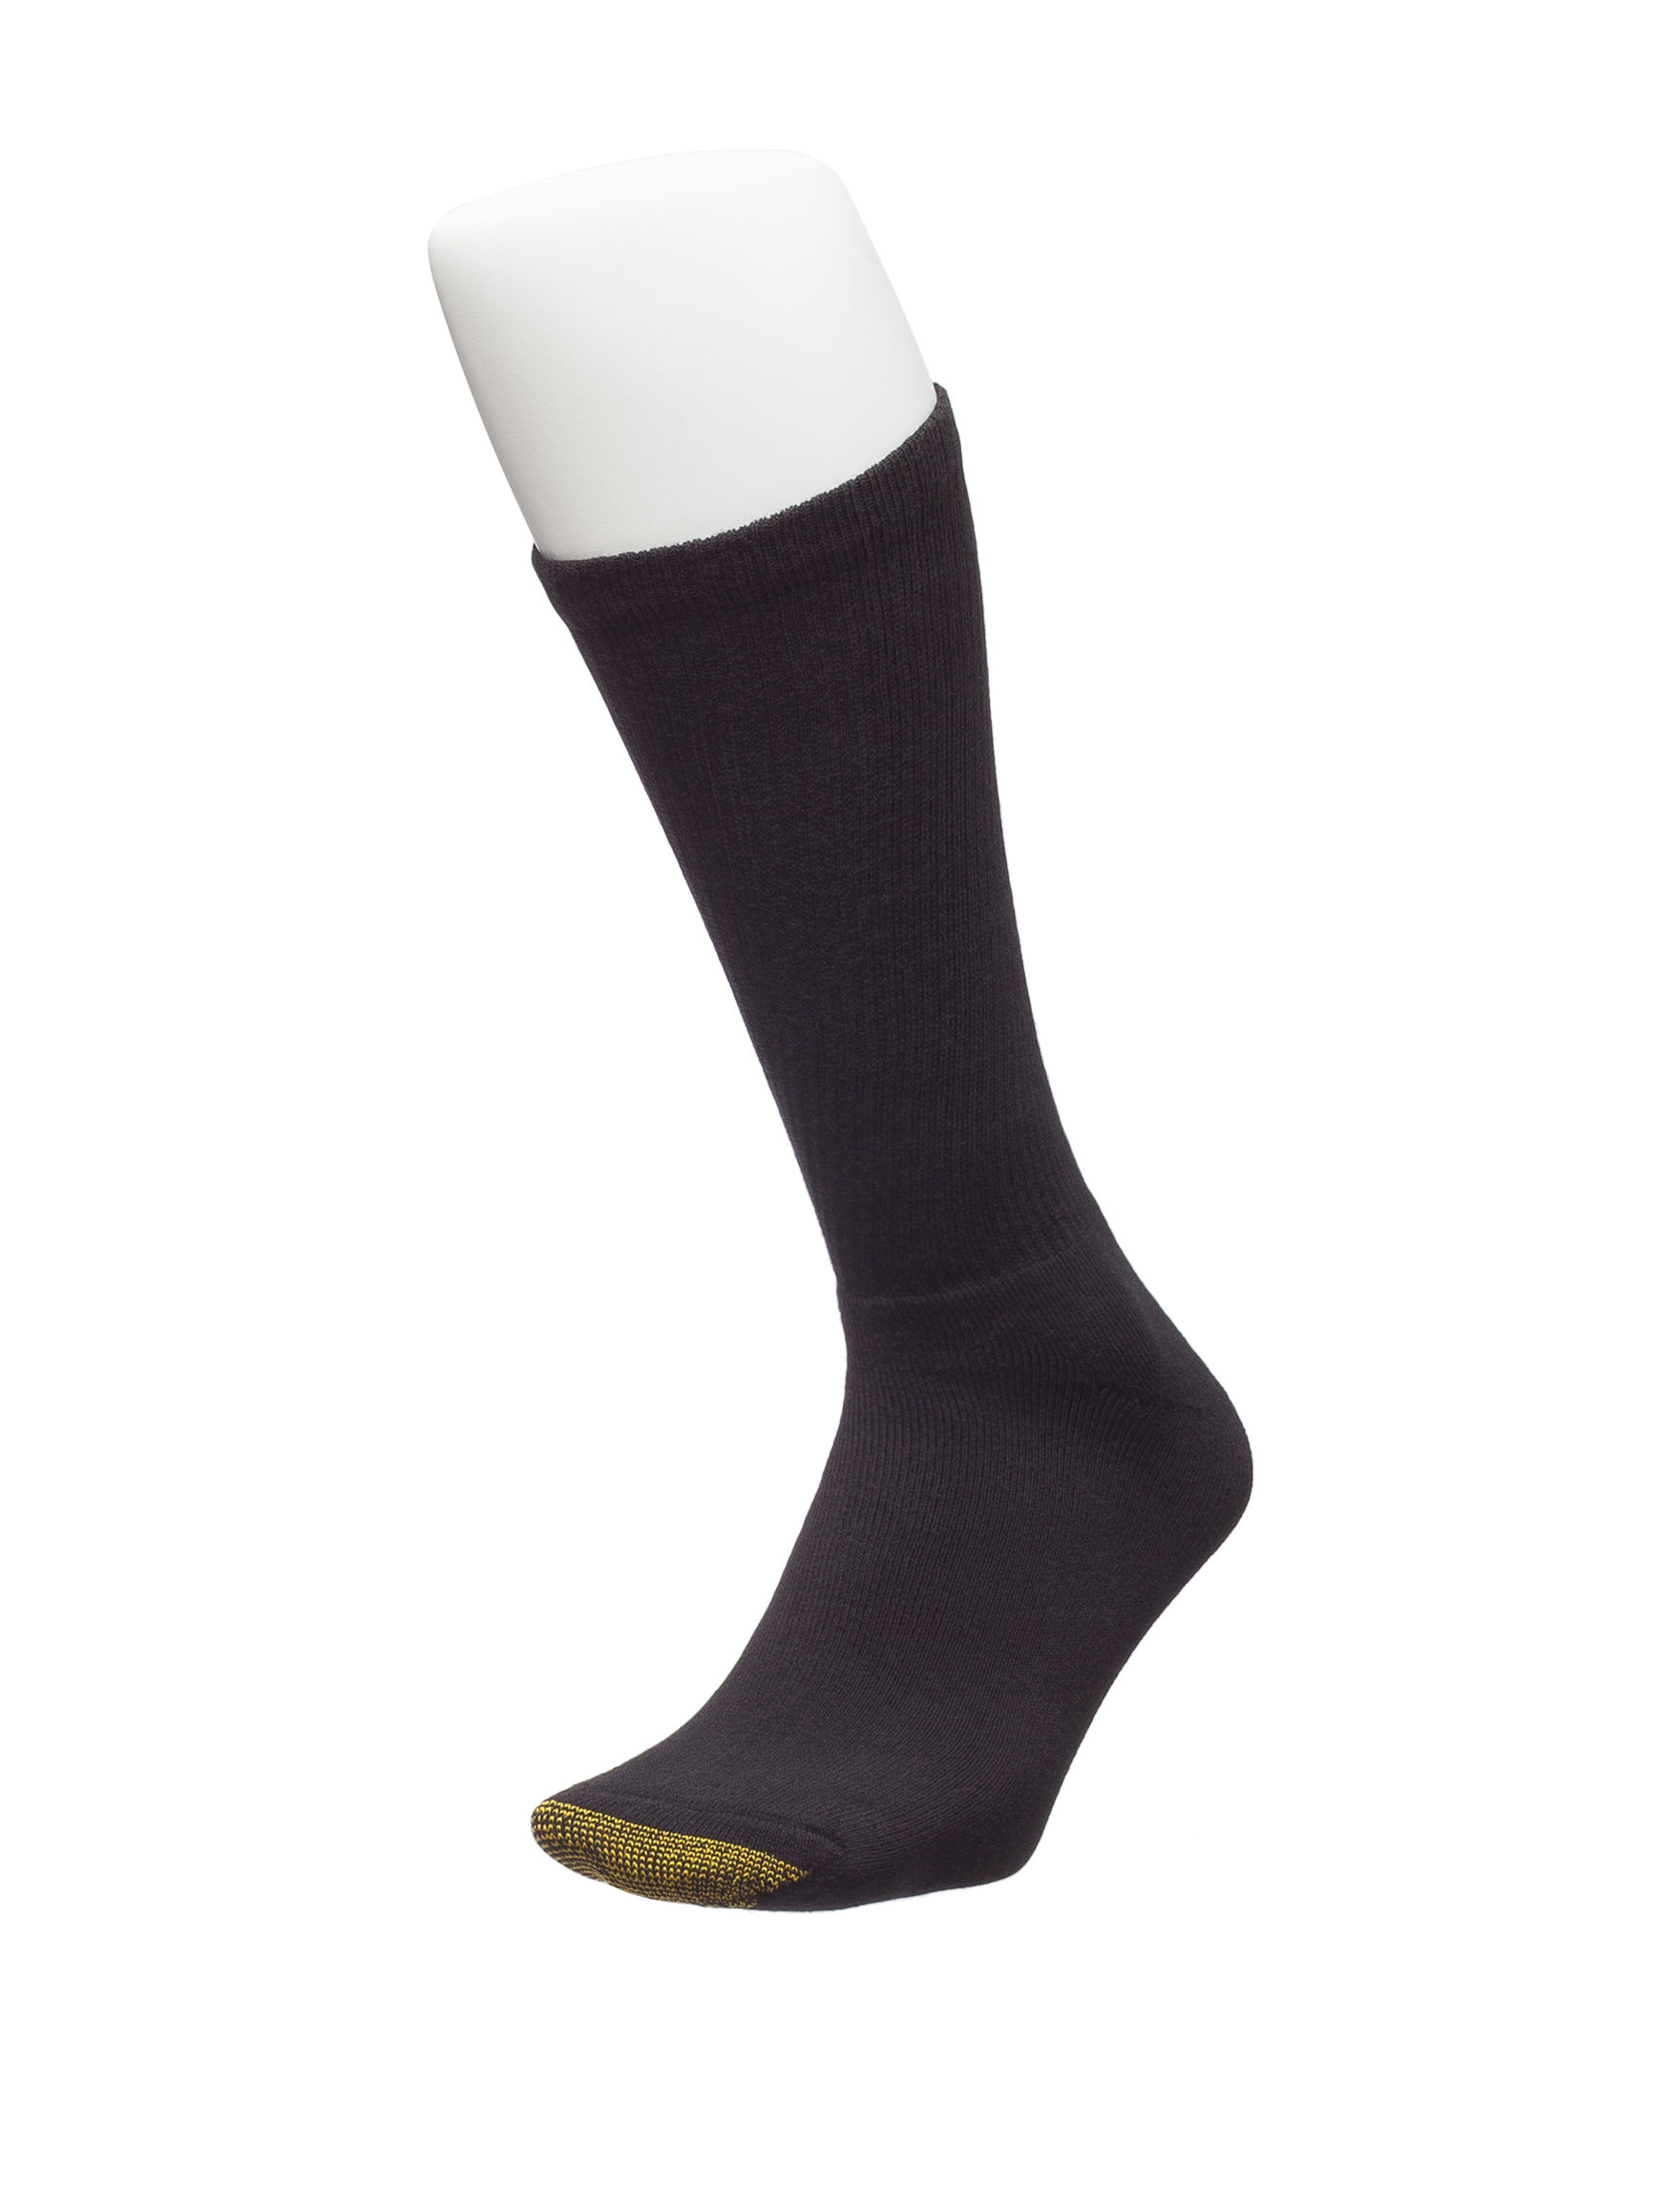 Gold Toe Black Socks